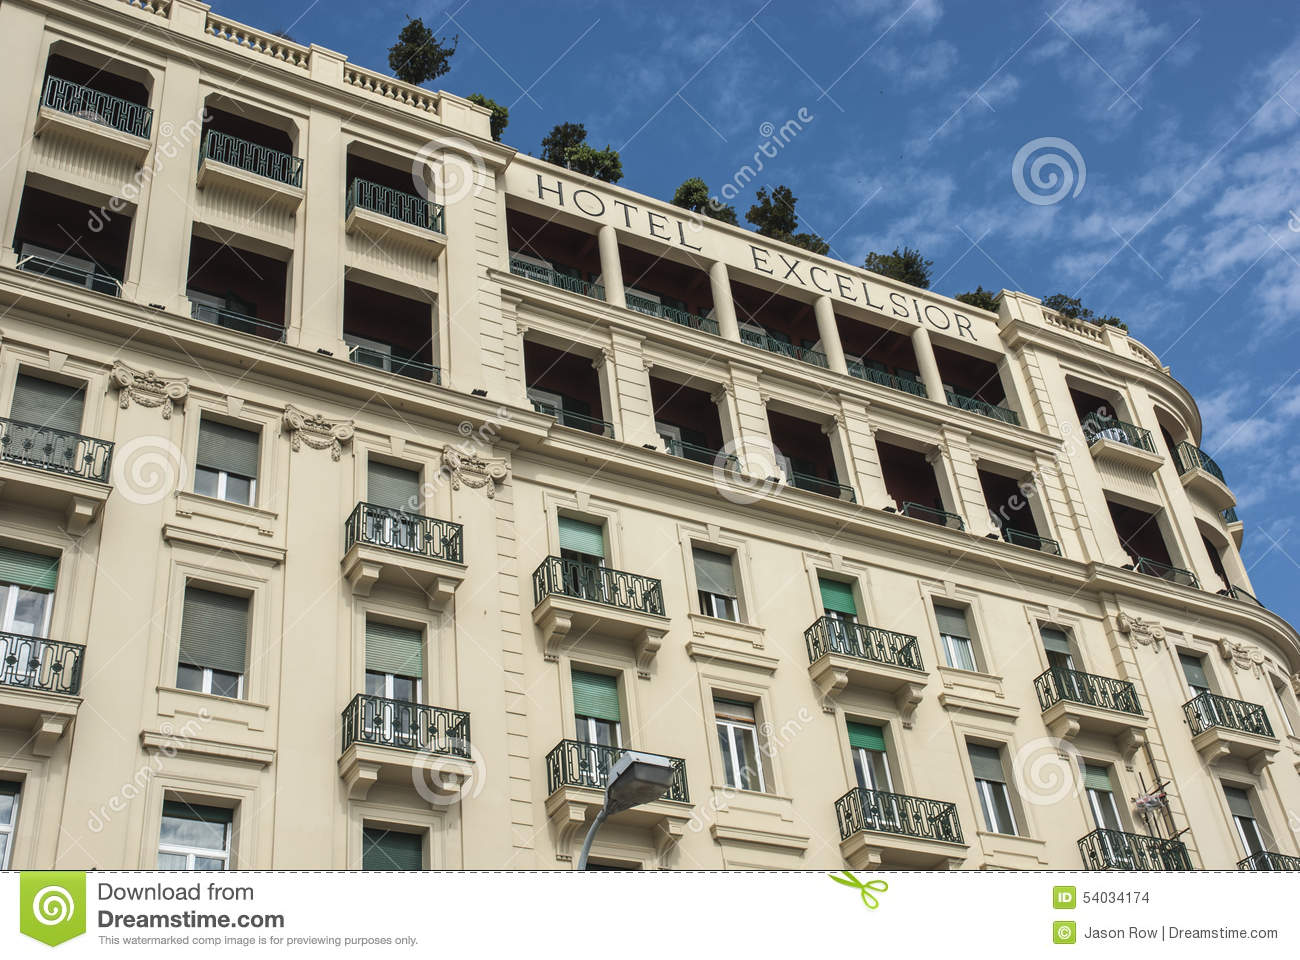 Exterior of the hotel excelsior editorial stock image for Design hotel naples italy